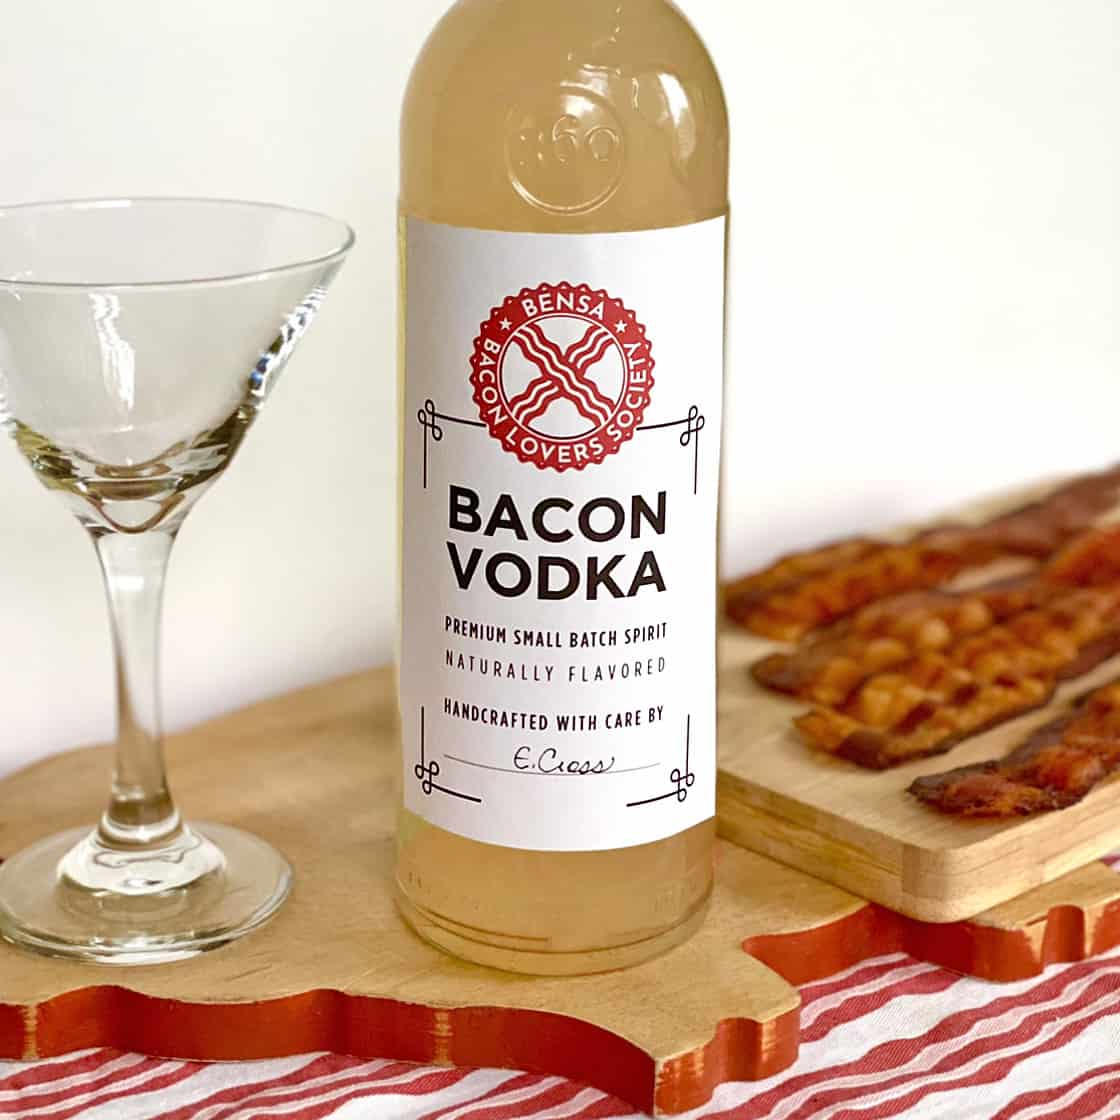 From left, a martini glass, a bottle of bacon vodka and four cooked bacon strips, on wooden cutting boards